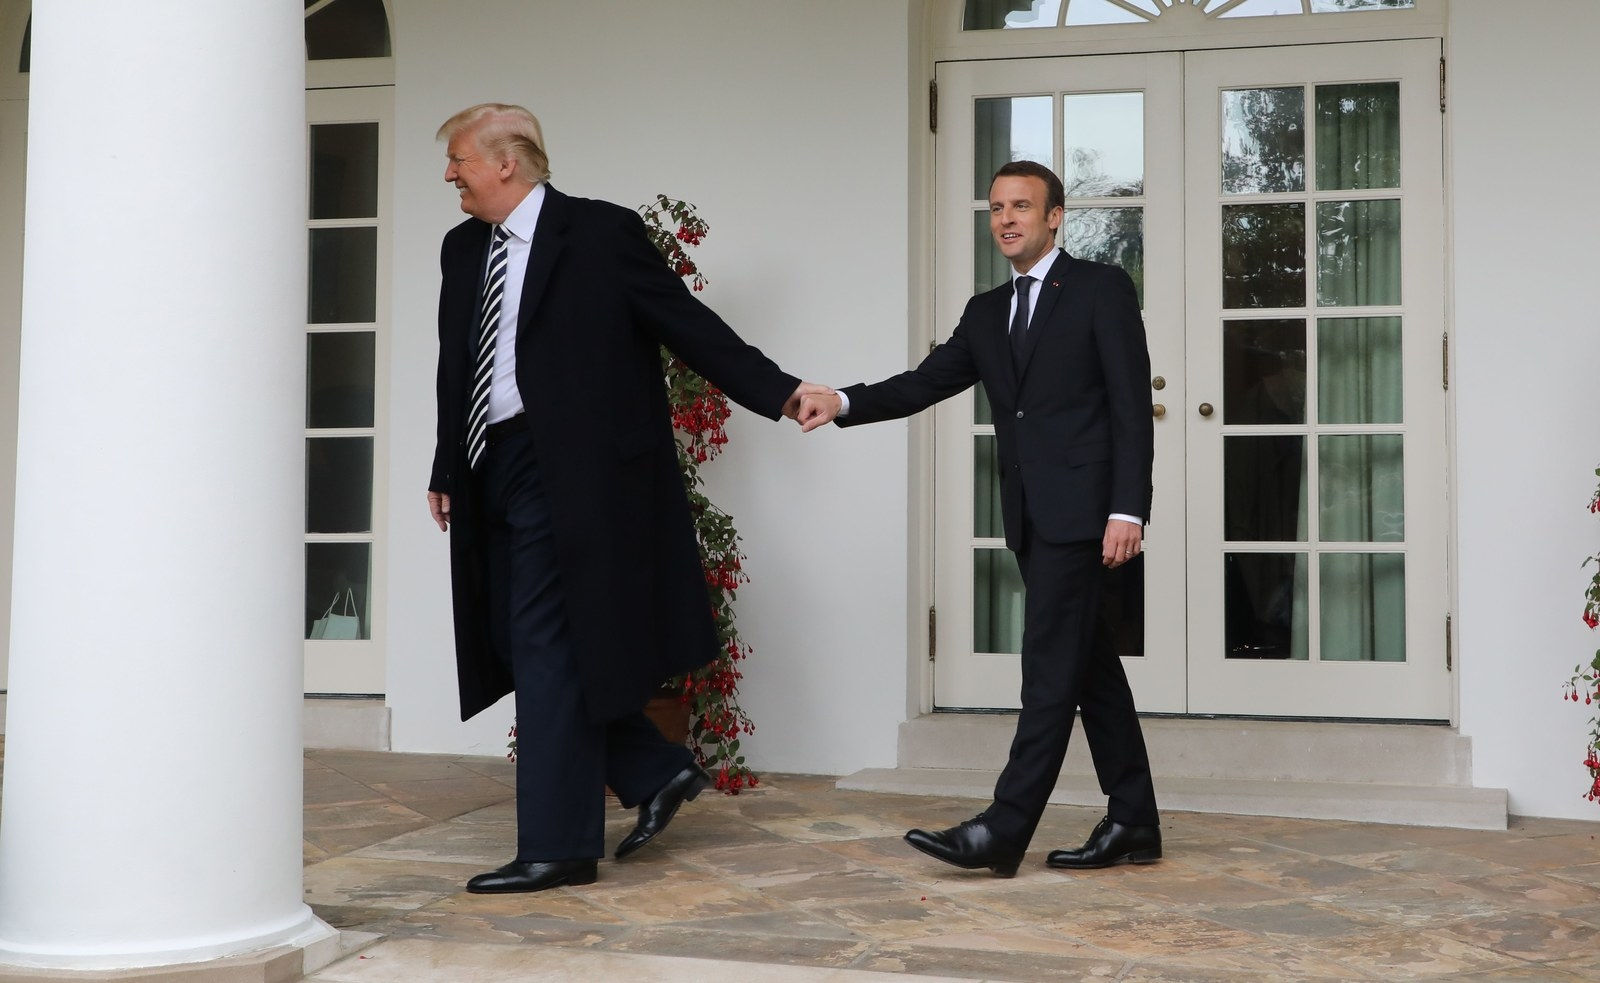 French President Emmanuel Macron and President Trump walk to the Oval Office on April 24.